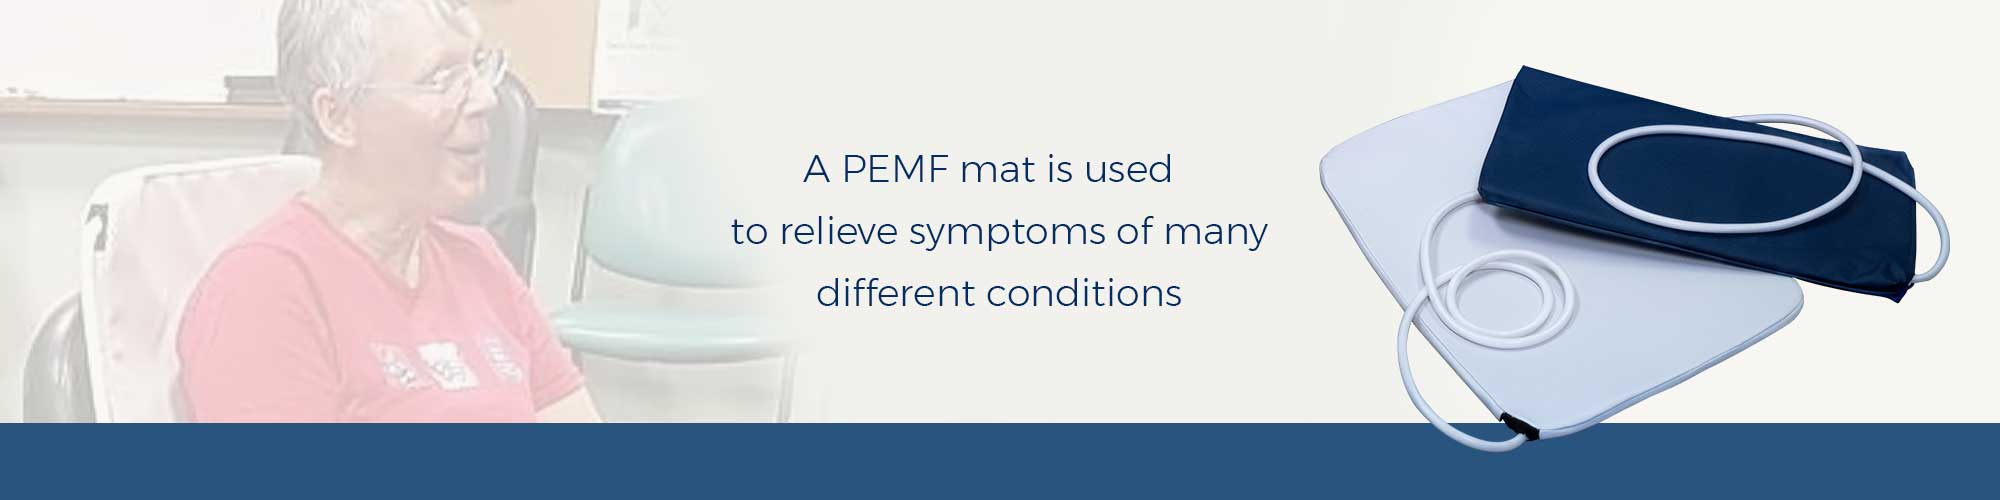 A PEMF mat is used to relieve symptoms of many different conditions.